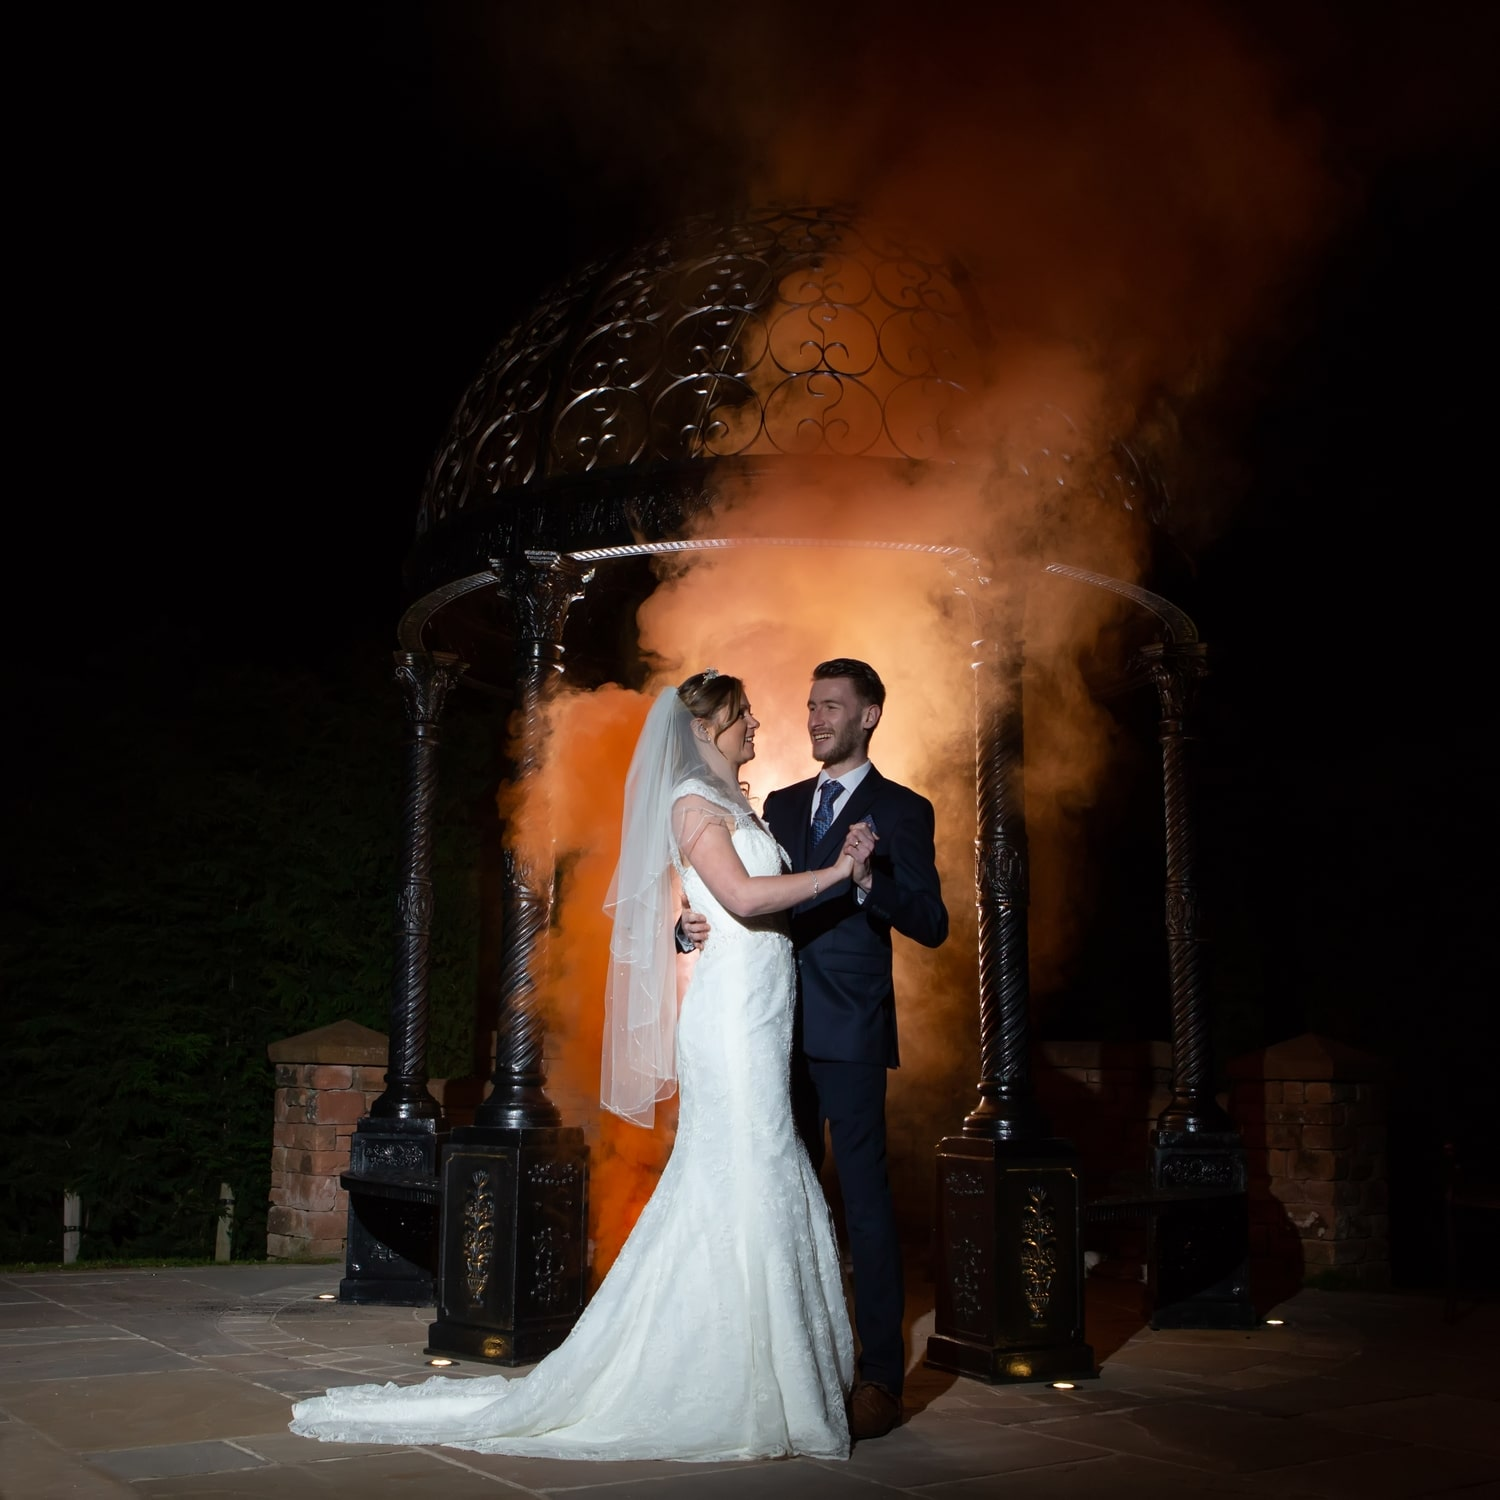 Bride and Groom outdoors holding each other at night, whilst behind orange smoke has been lit up to form a creative background.